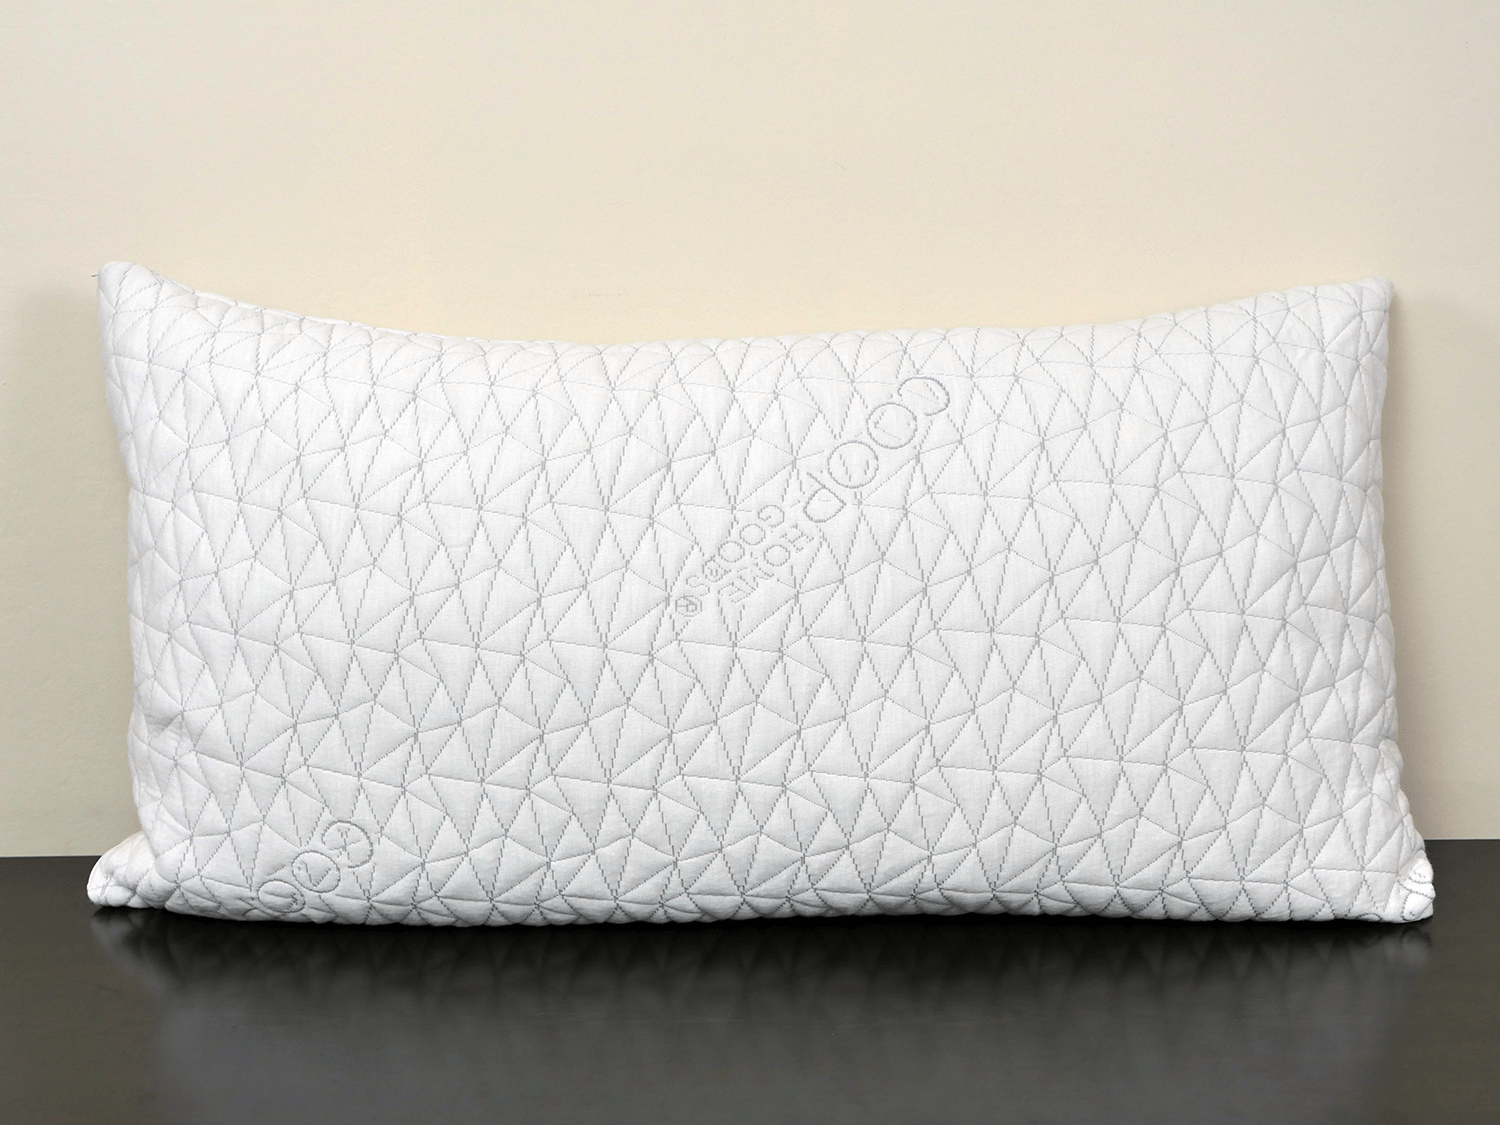 Coop Home Goods Memory Foam Pillow Review Sleepopolis